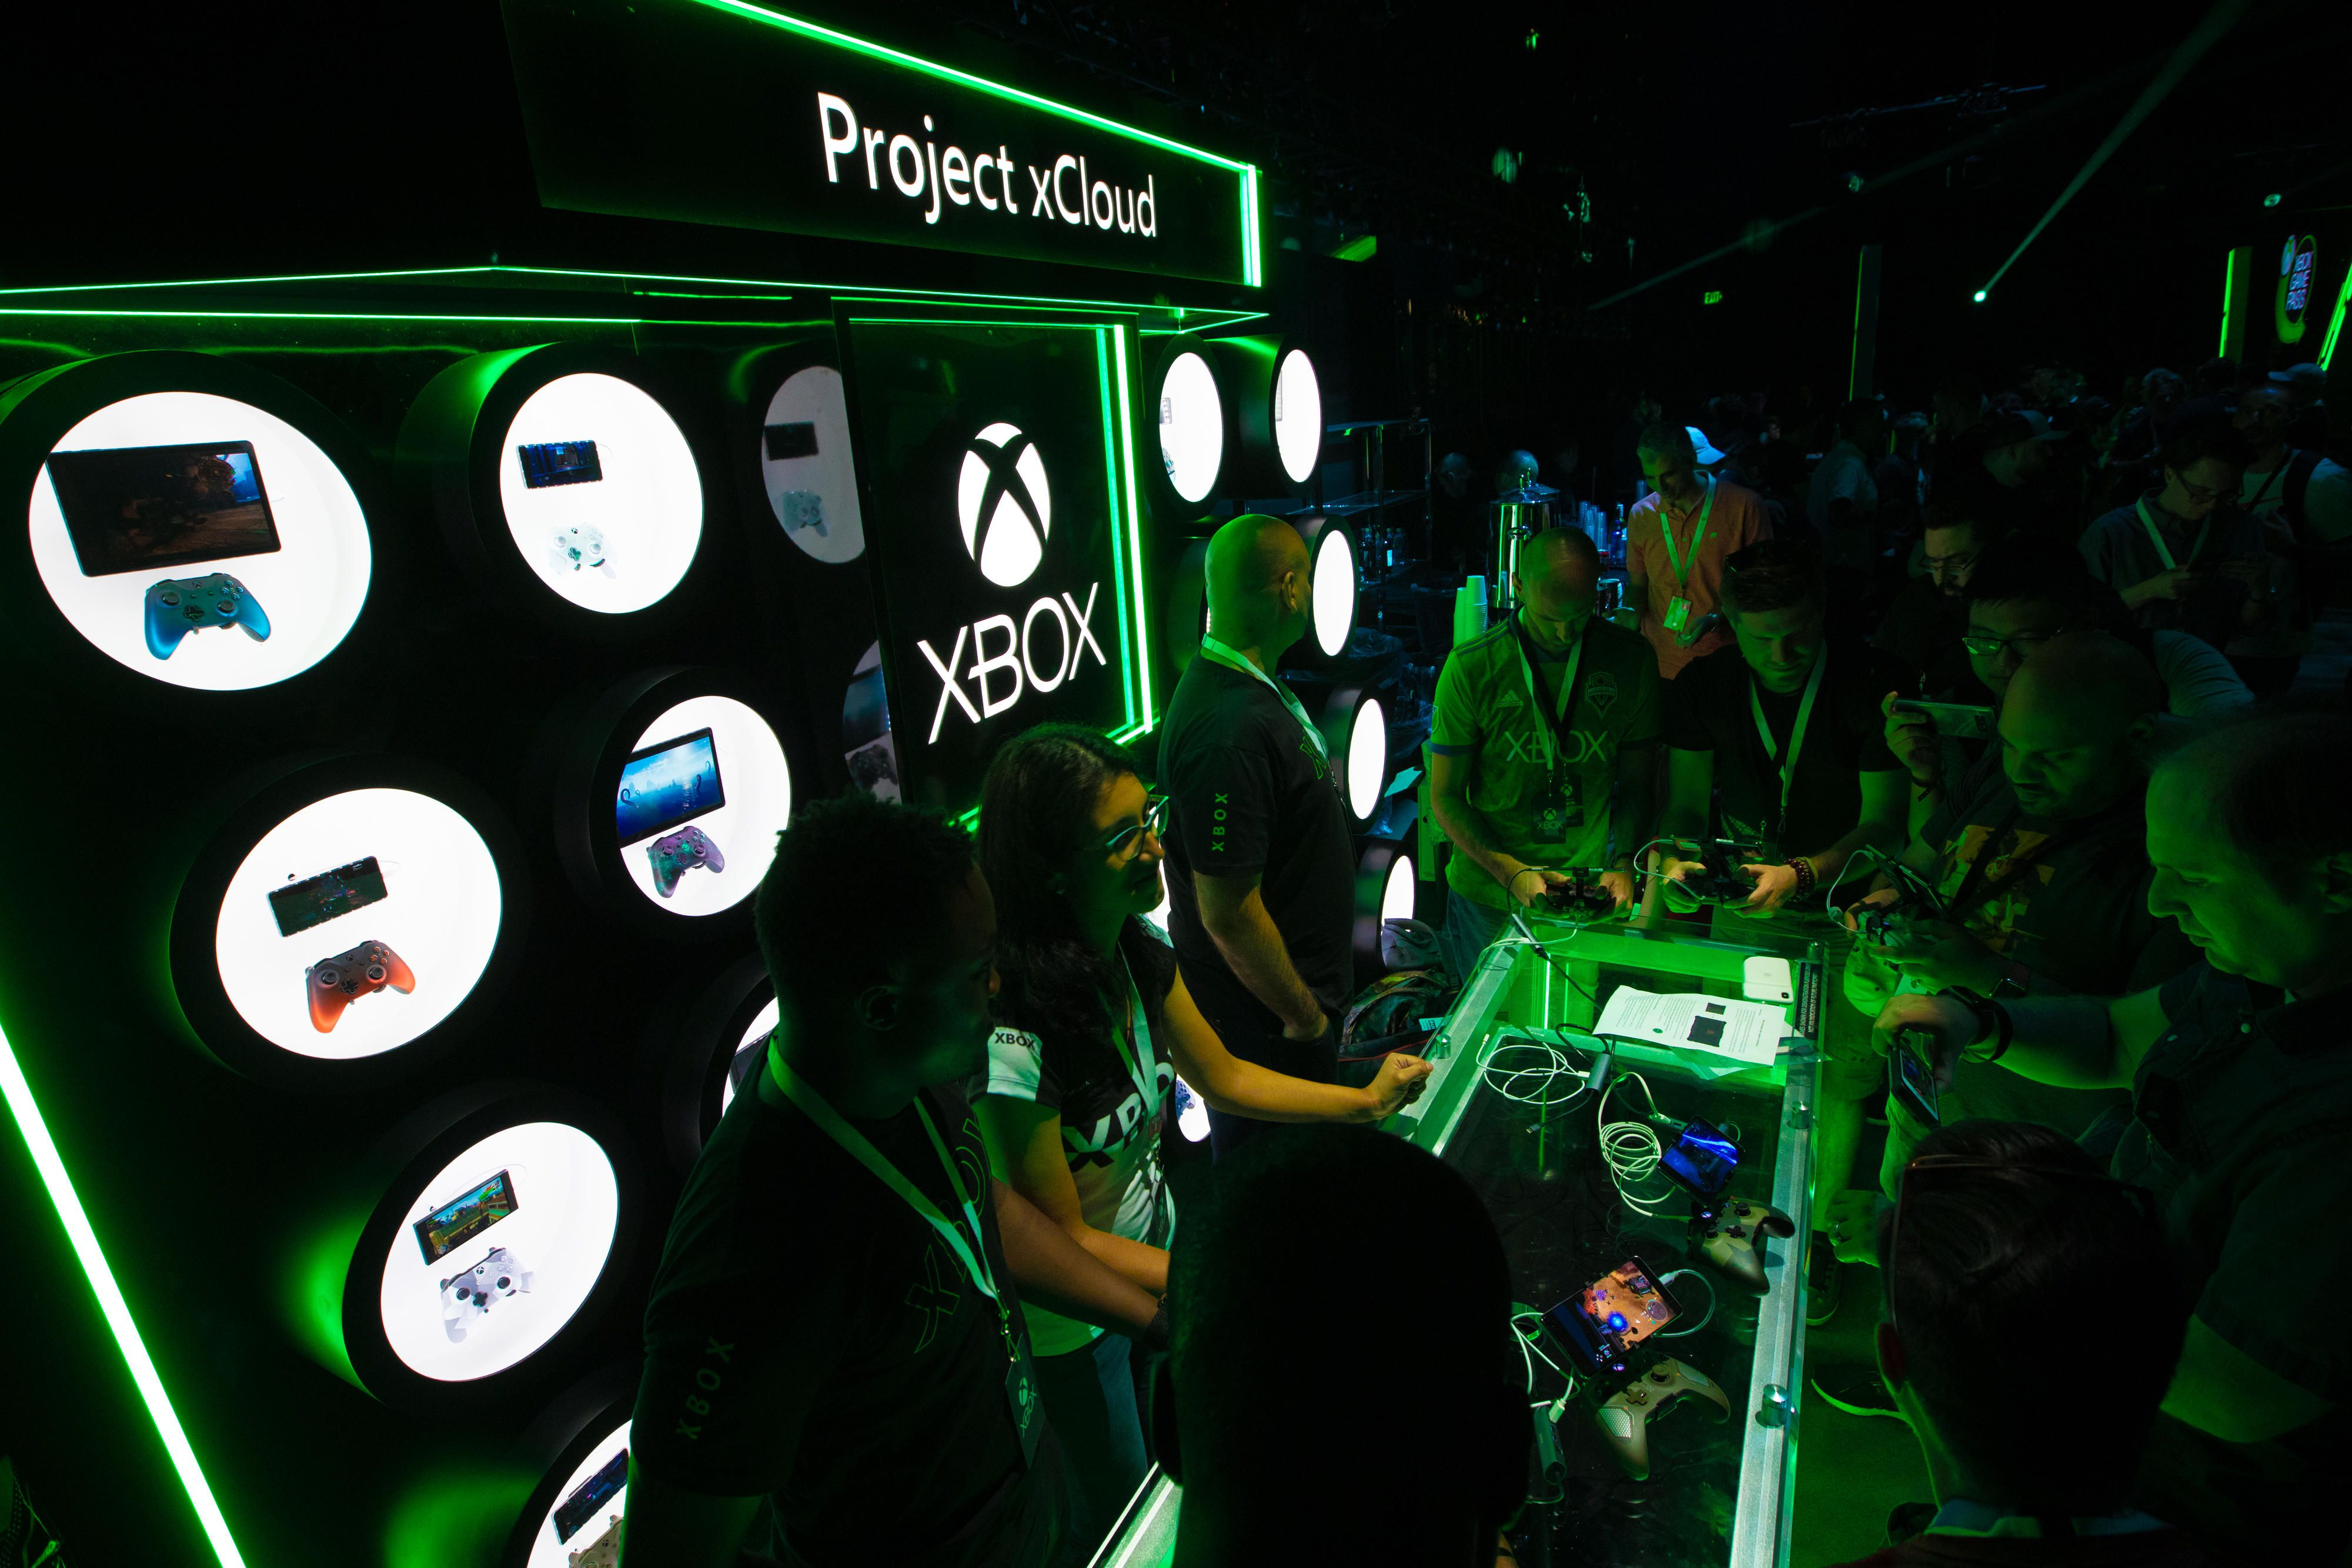 e3-2019-xbox-project-xcloud-4368